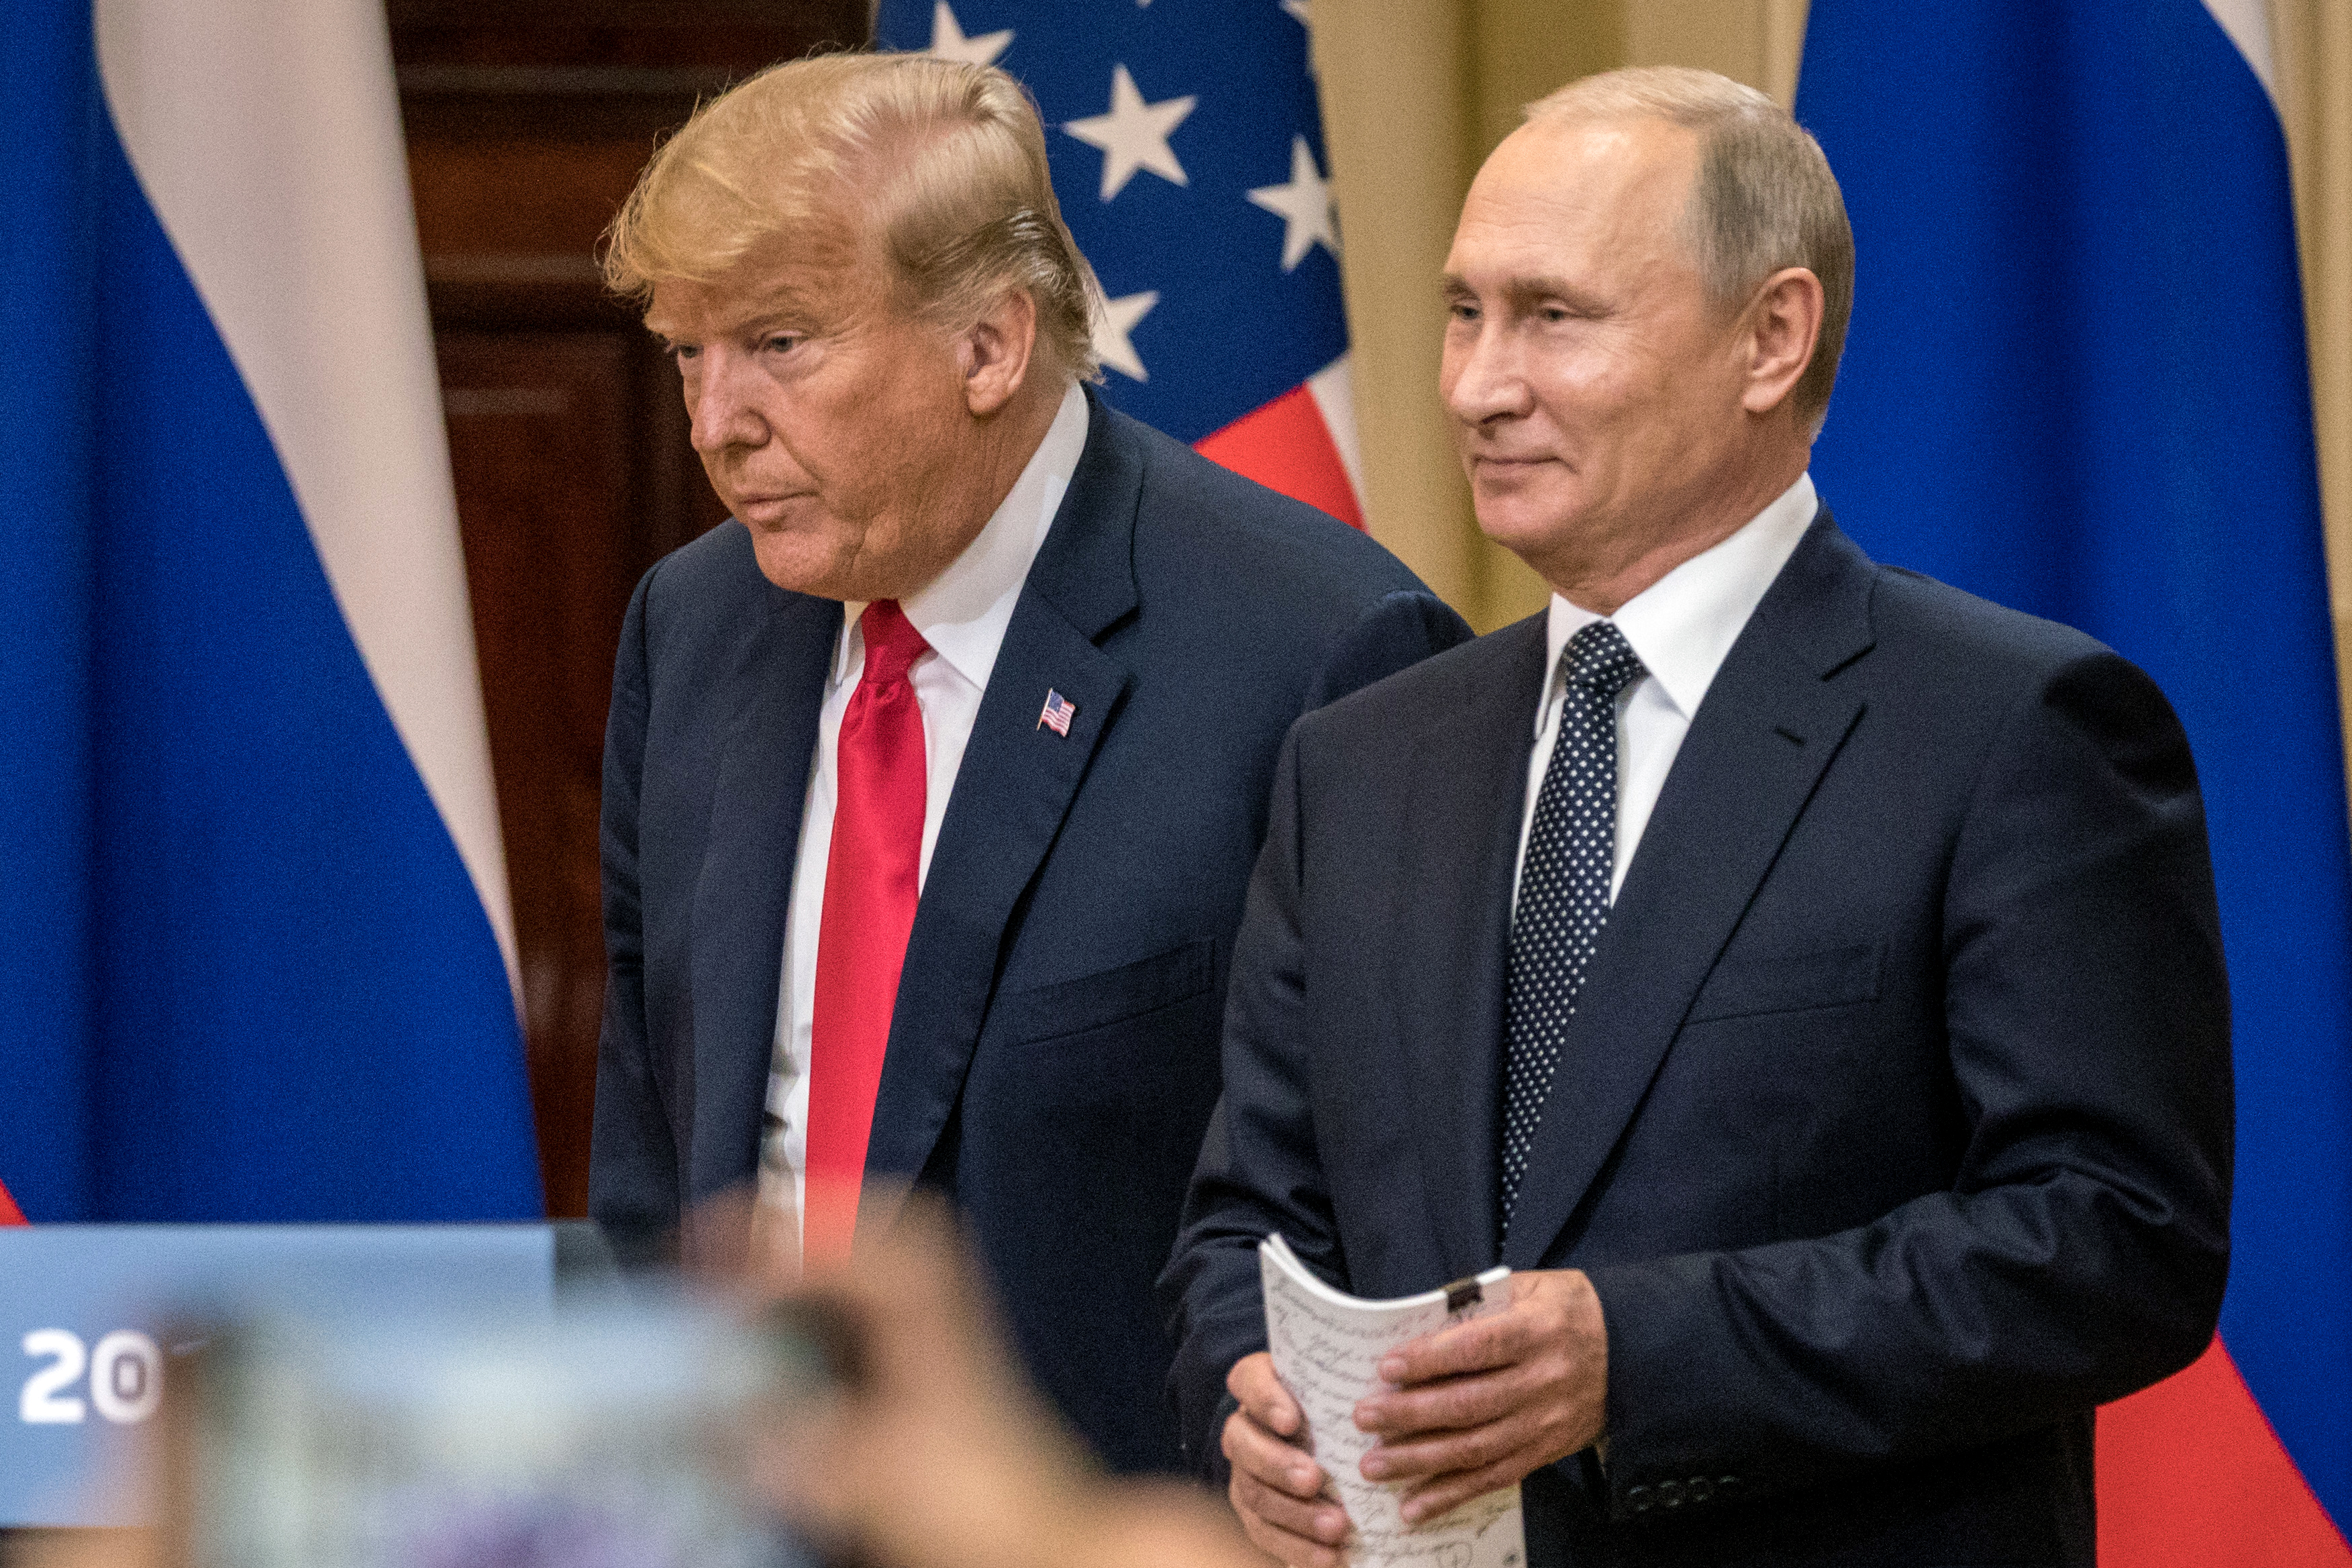 U.S. President Donald Trump (L) and Russian President Vladimir Putin arrive to waiting media during a joint press conference after their summit on July 16, 2018 in Helsinki, Finland. The two leaders met one-on-one and discussed a range of issues including the 2016 U.S Election collusion. (Getty Images)